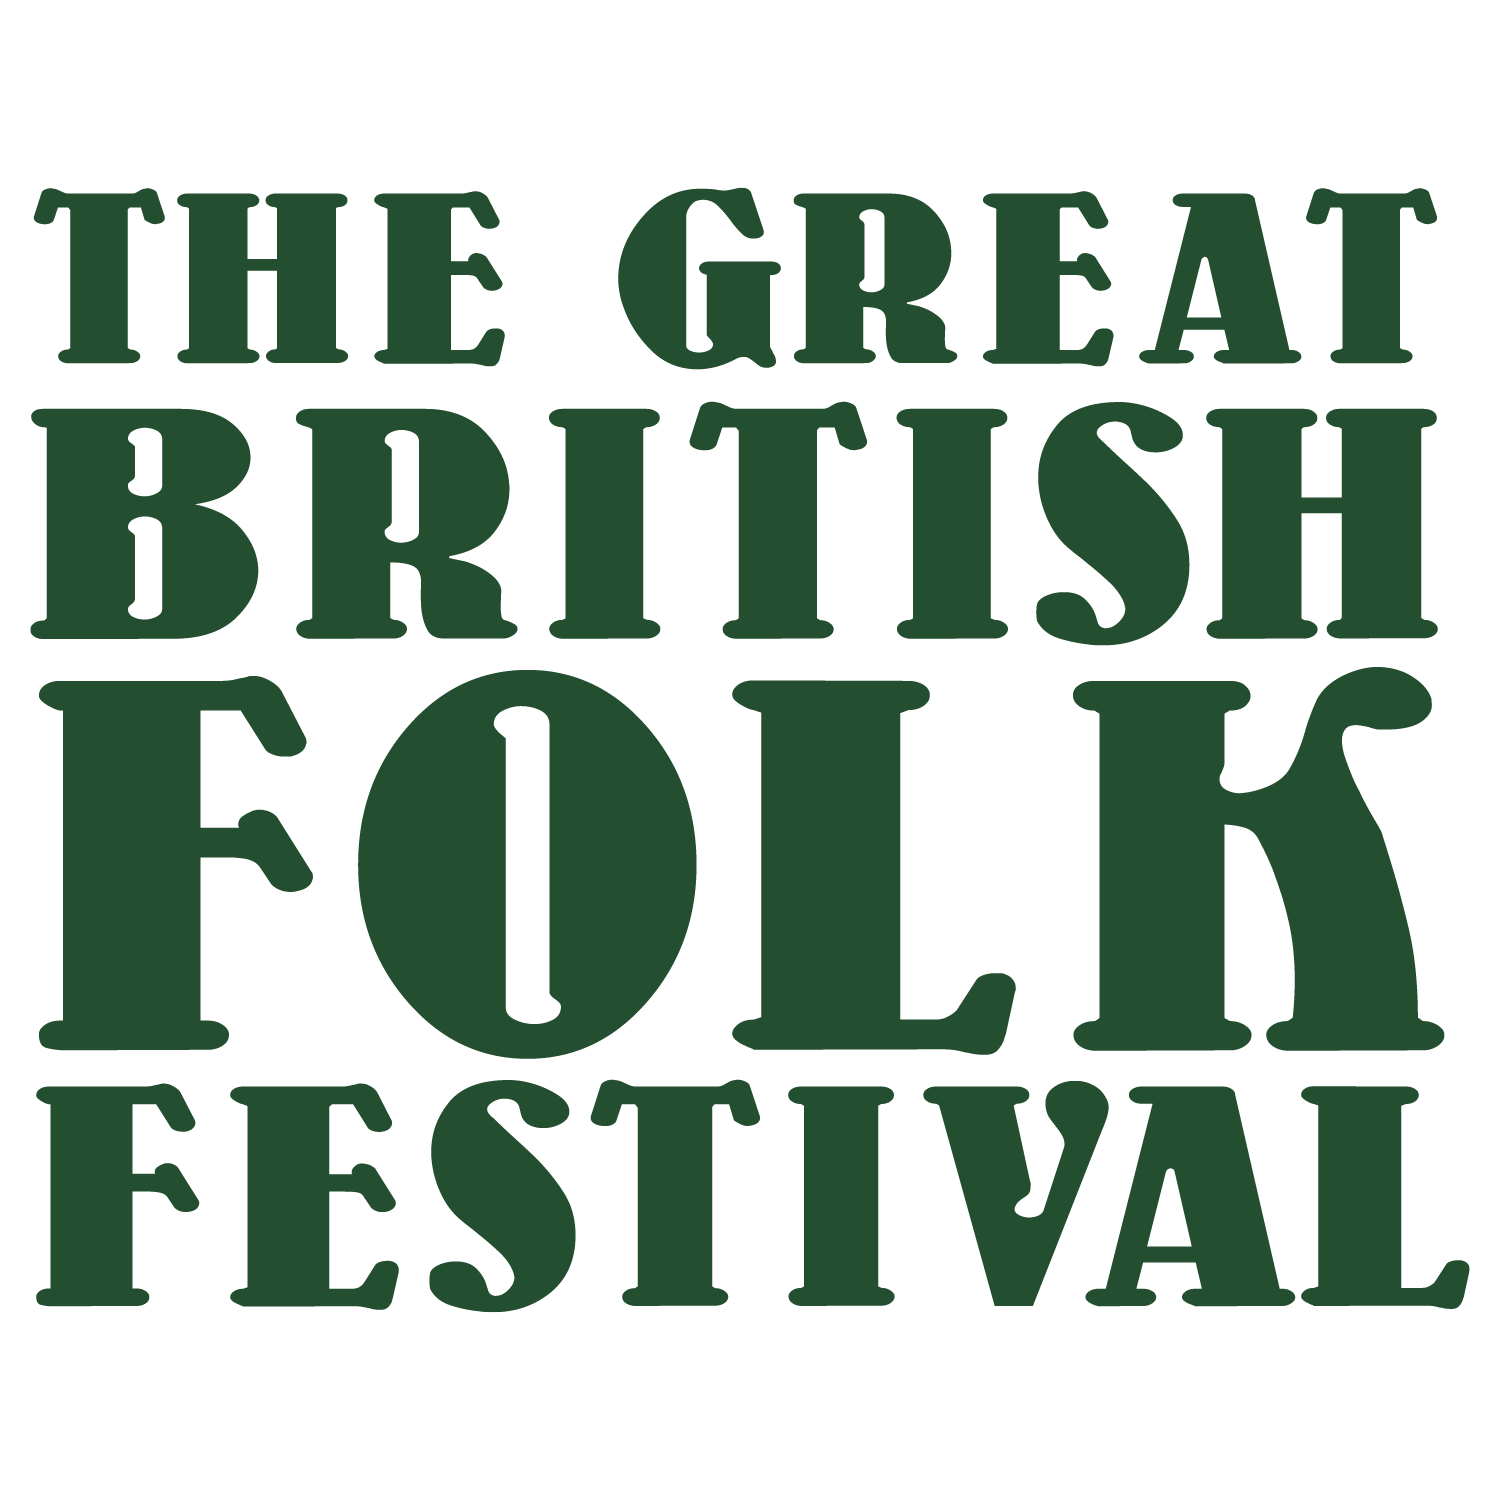 The-Great-British-Folk-Festival.png